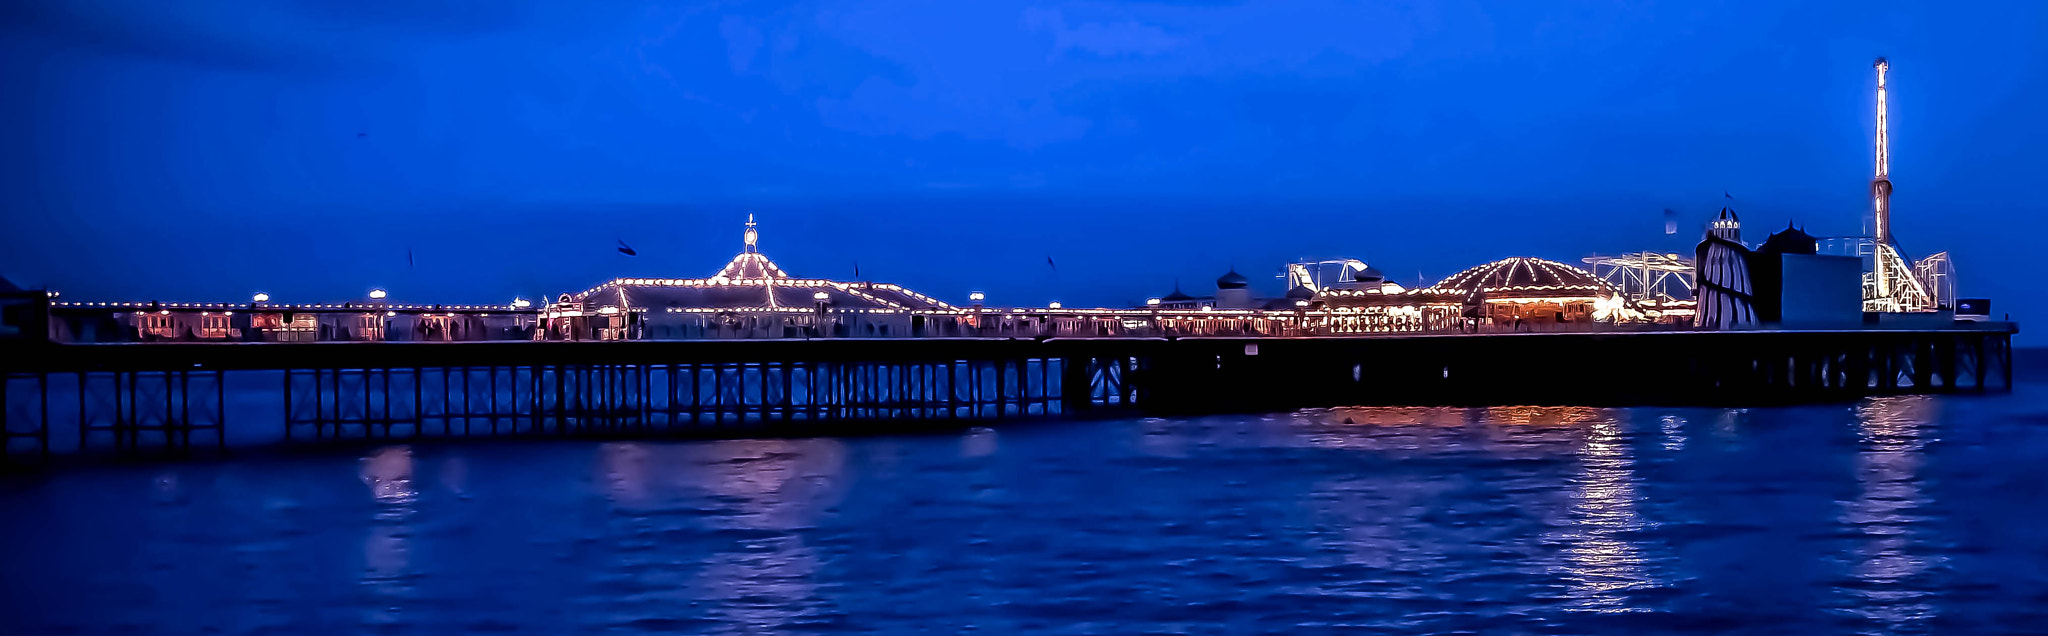 Photograph The Brighton Pier by julian john on 500px